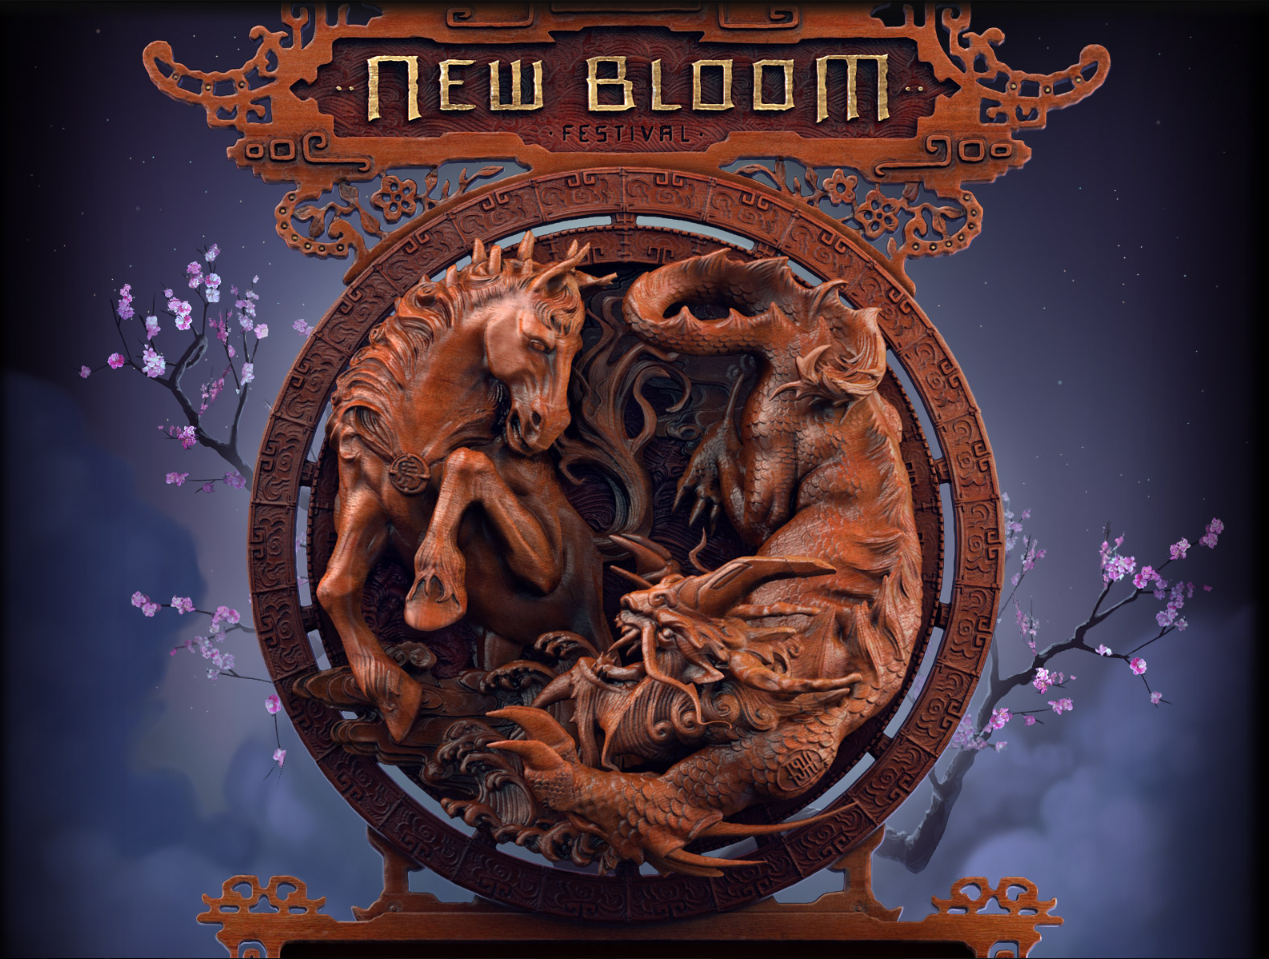 Dota 2 News: New Bloom Festival - Dota 2 new game mode | GosuGamers